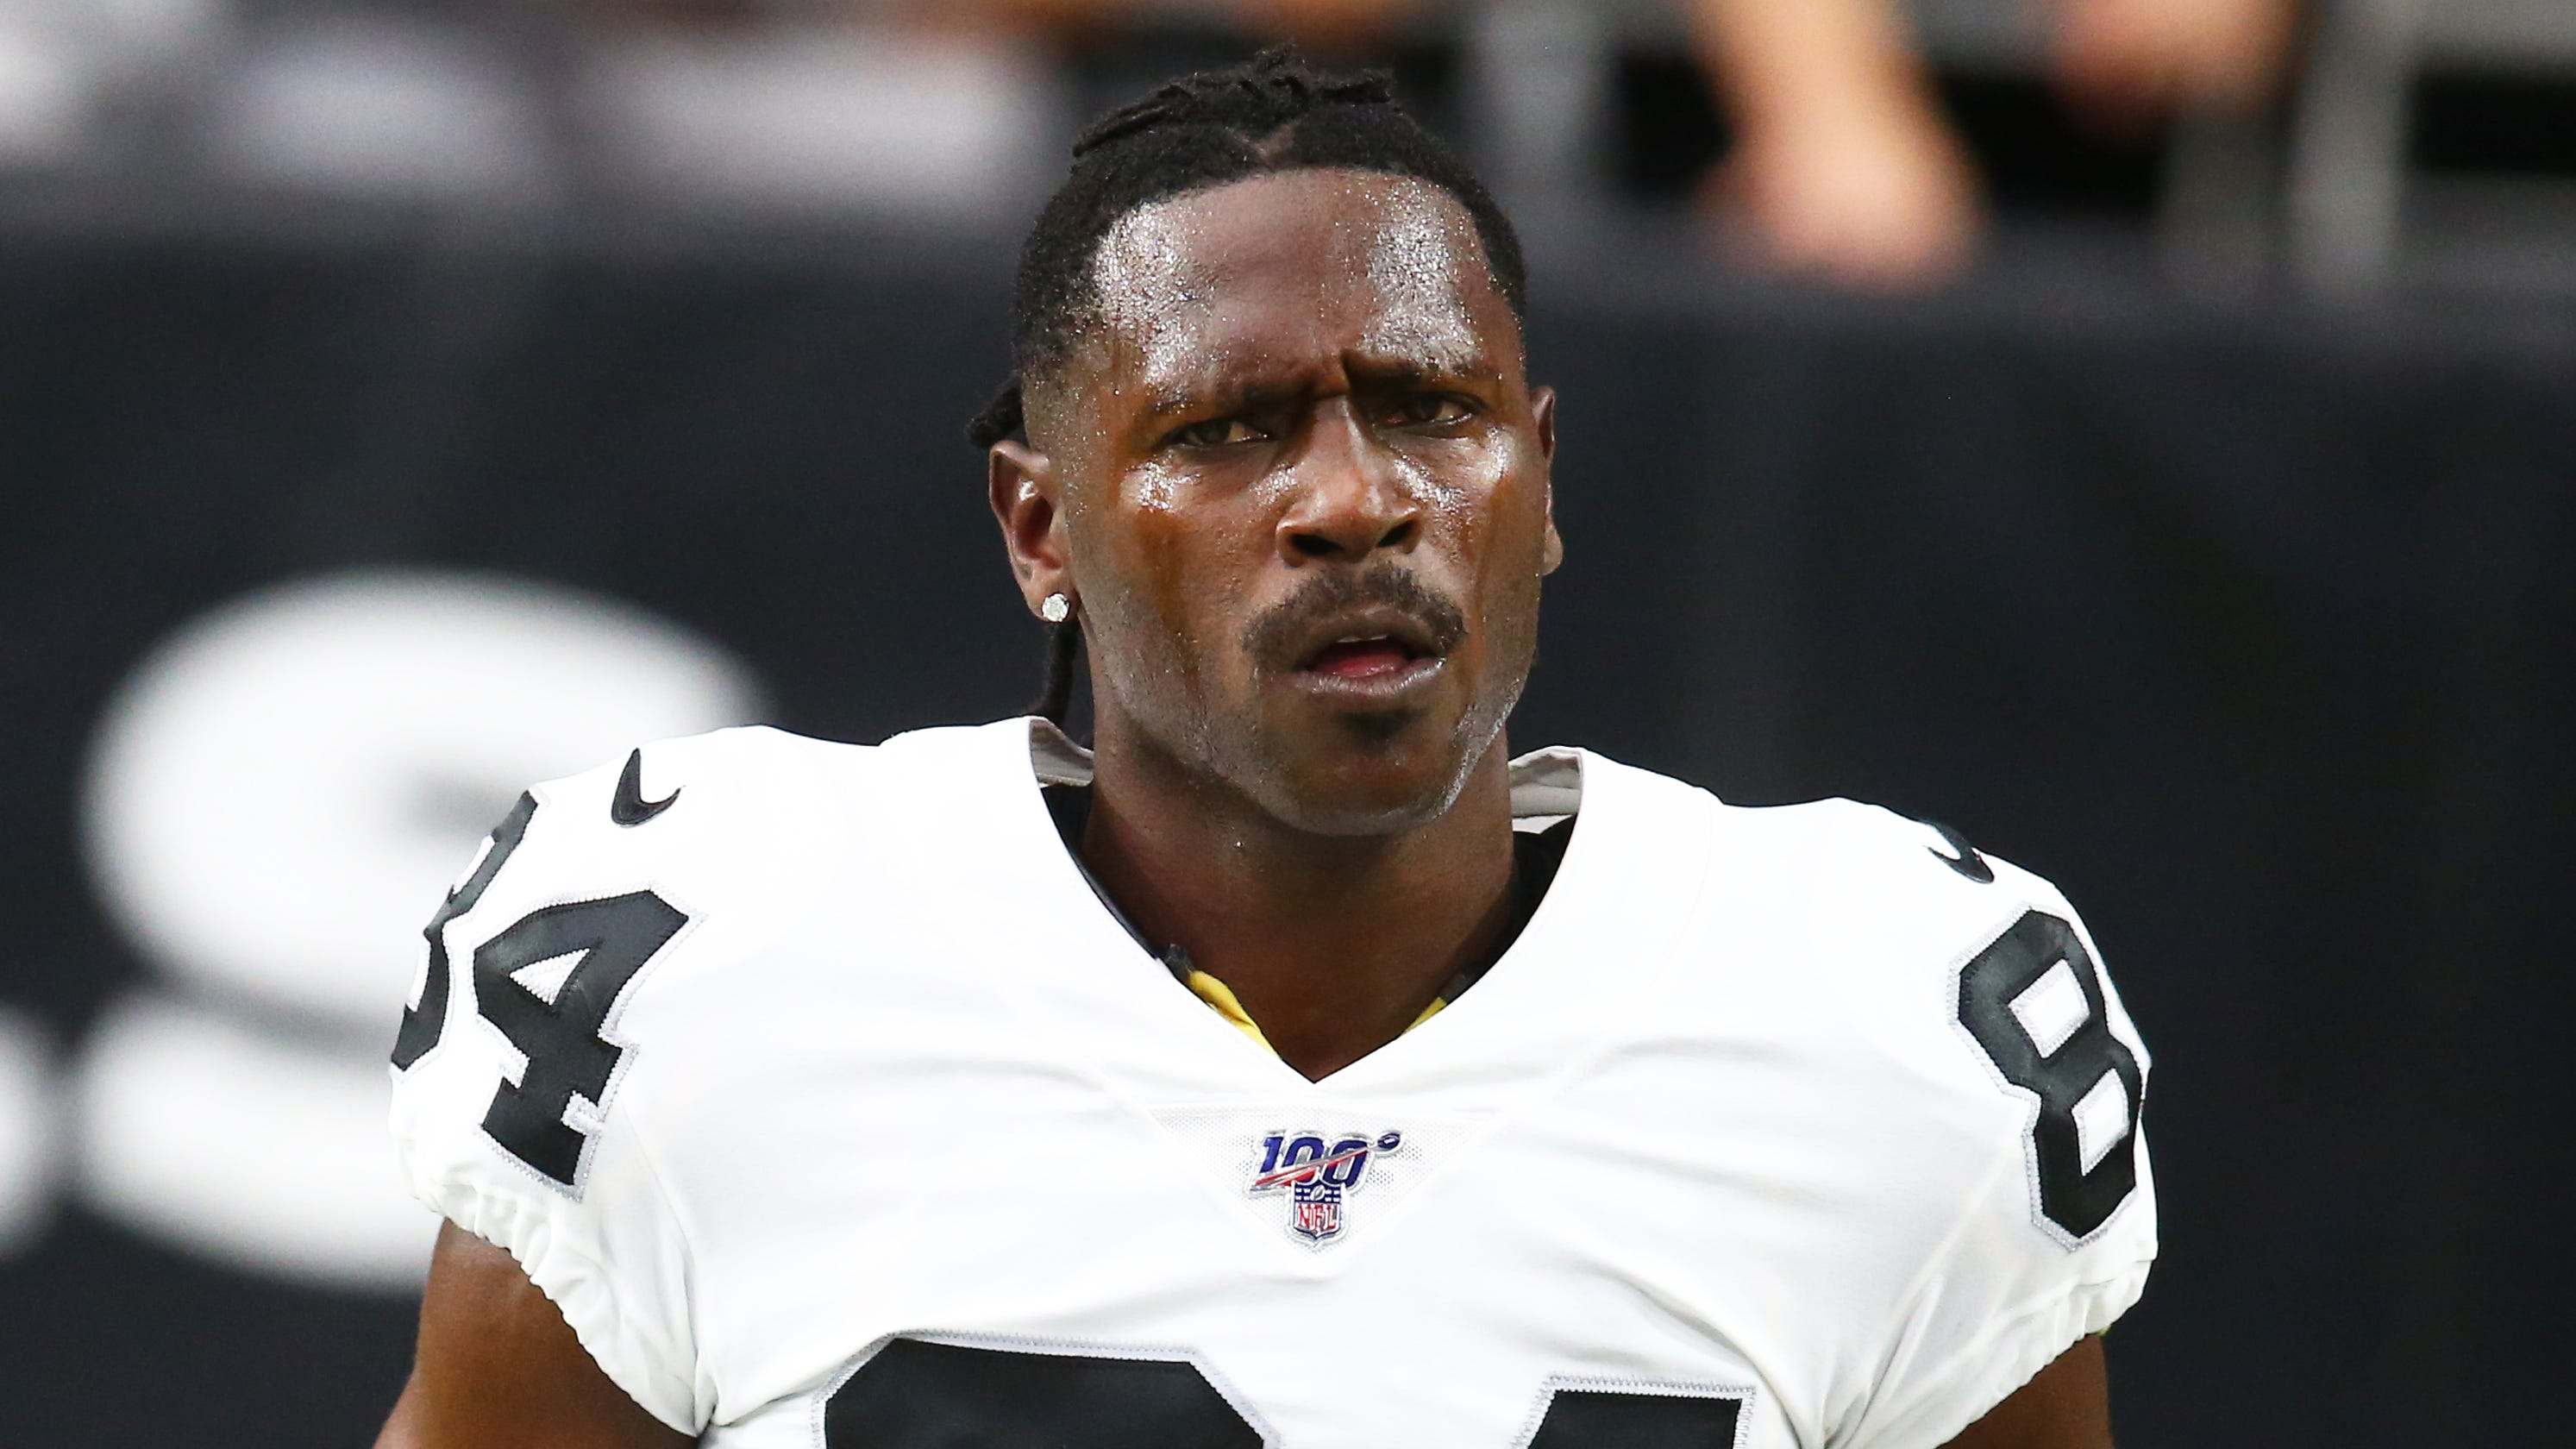 What we know about sexual assault lawsuit filed against Patriots star Antonio Brown